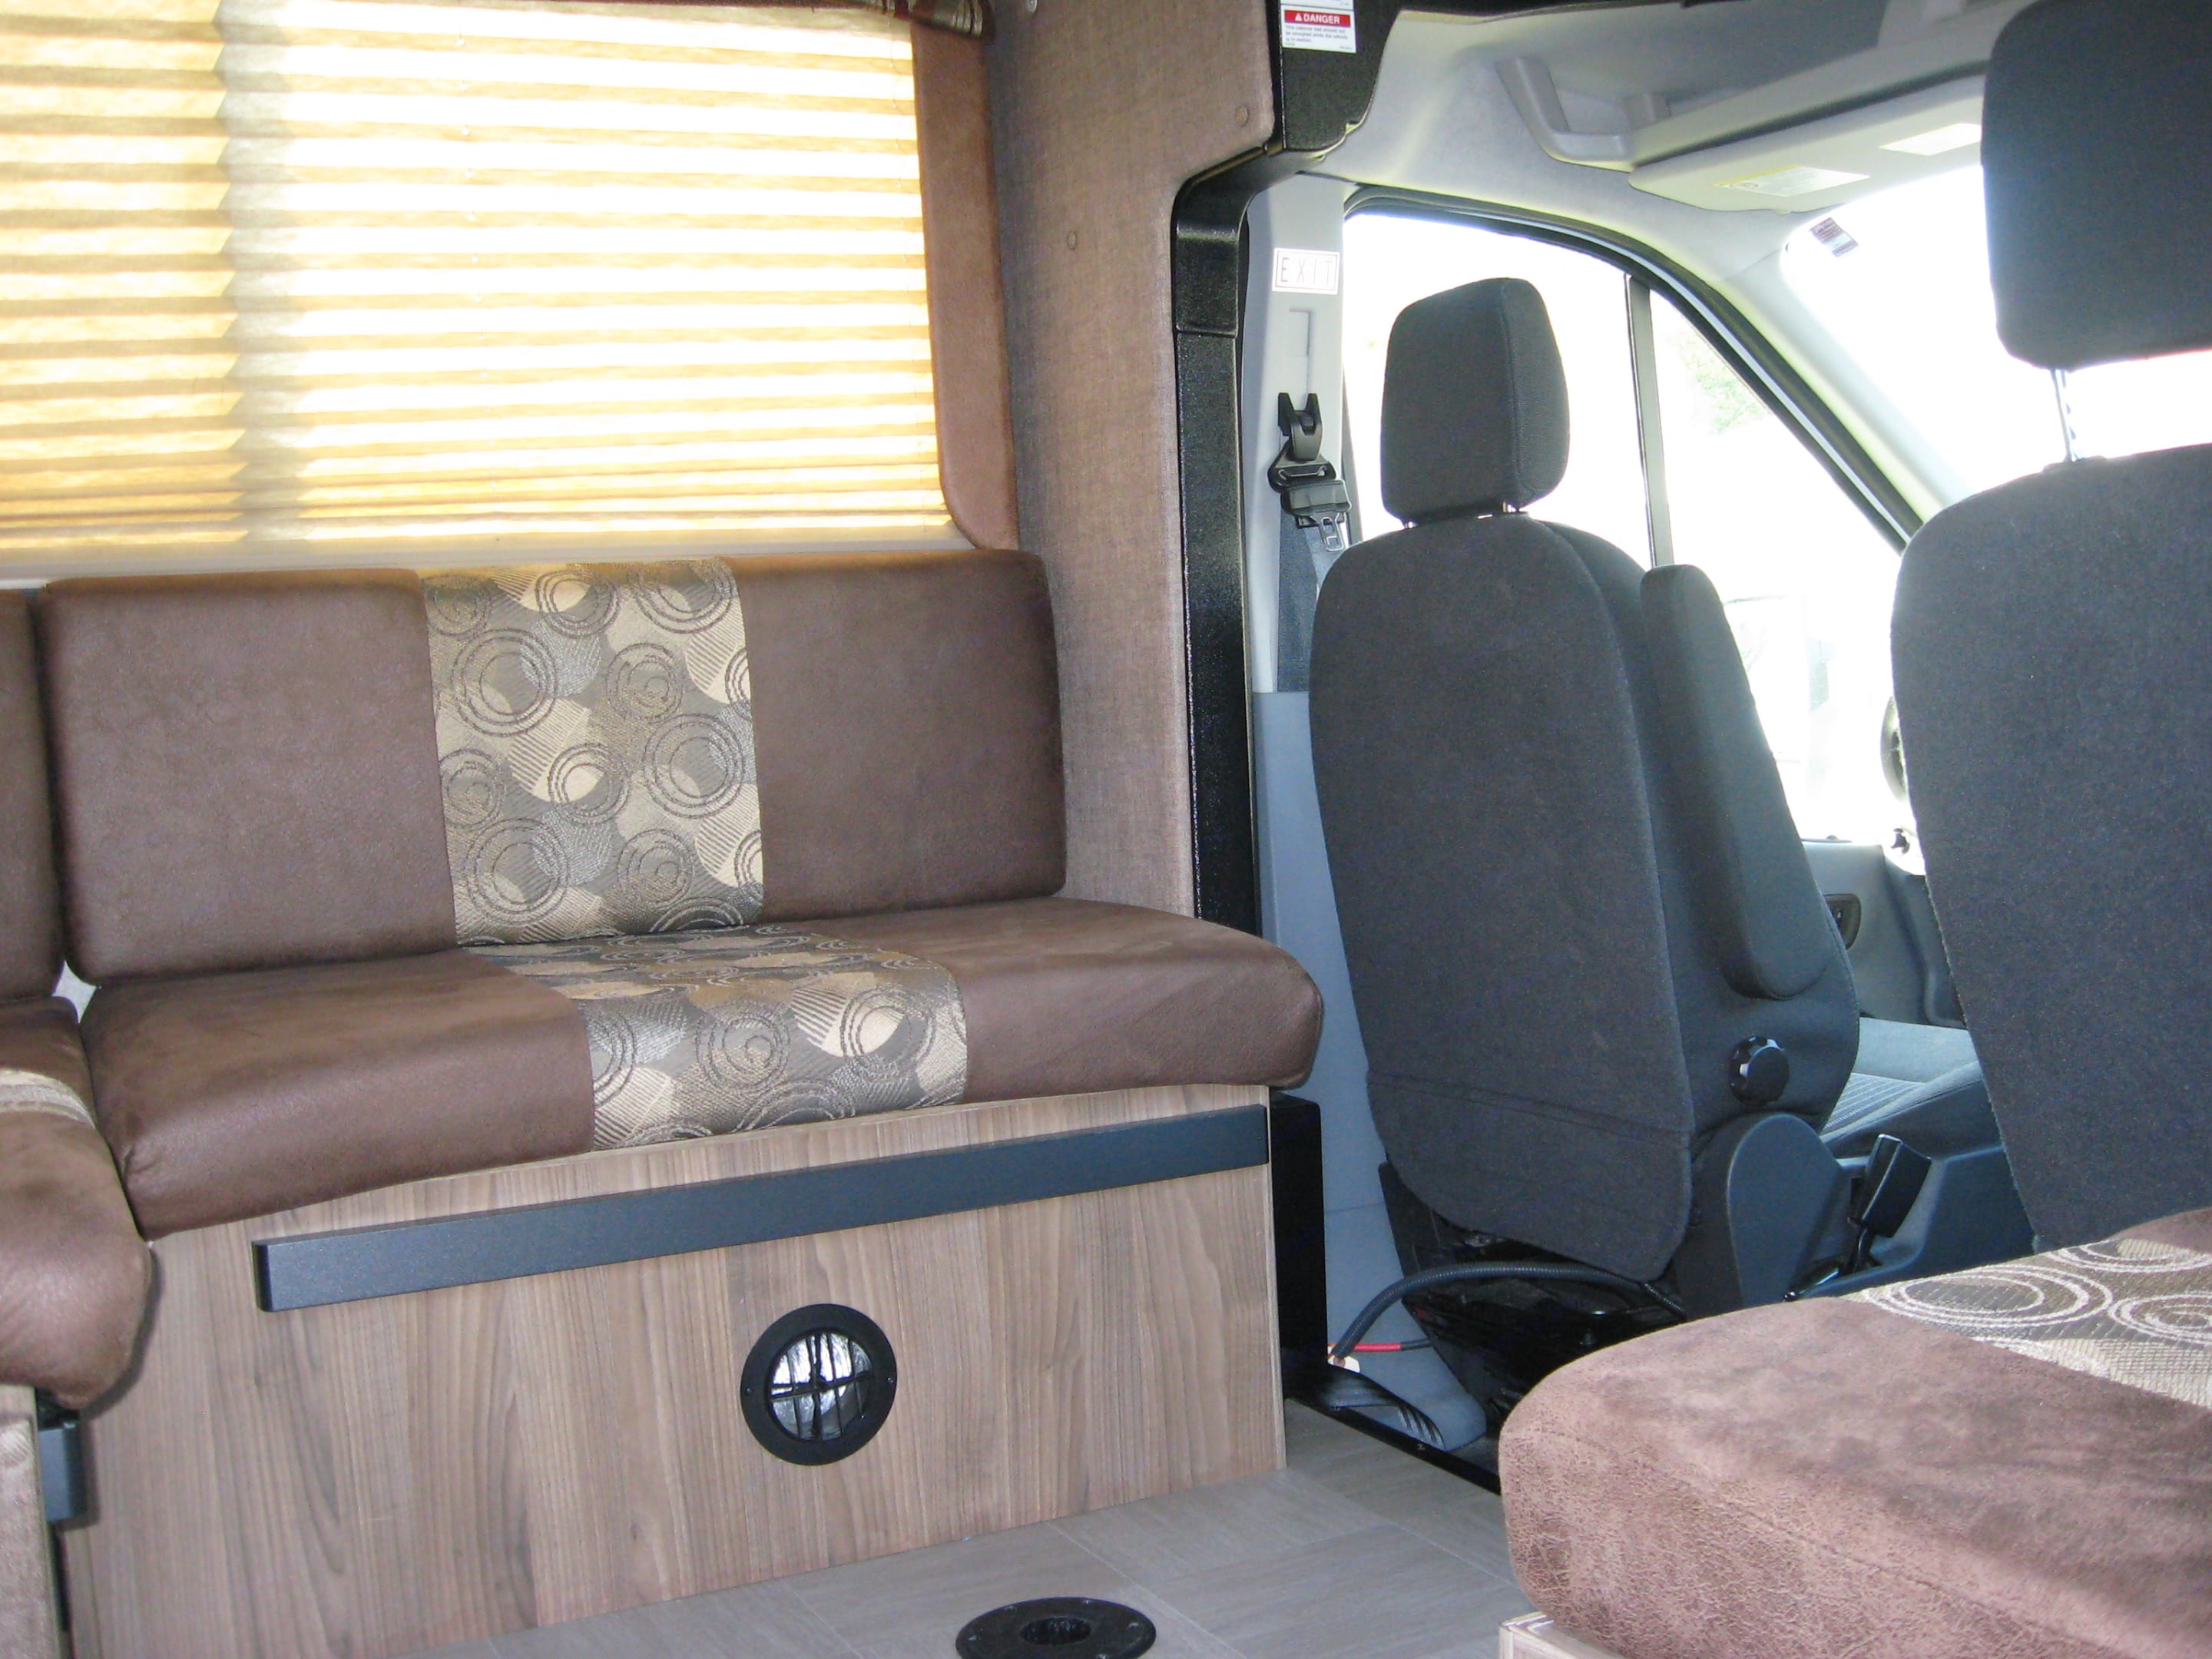 The dining area directly behind the driver's seat features a removable tabletop which allows the area to be converted into additional sleeping space.  A jump seat (shown in the lower right corner of this picture) gives additional seating at mealtimes.. Coachmen Freelander 2017